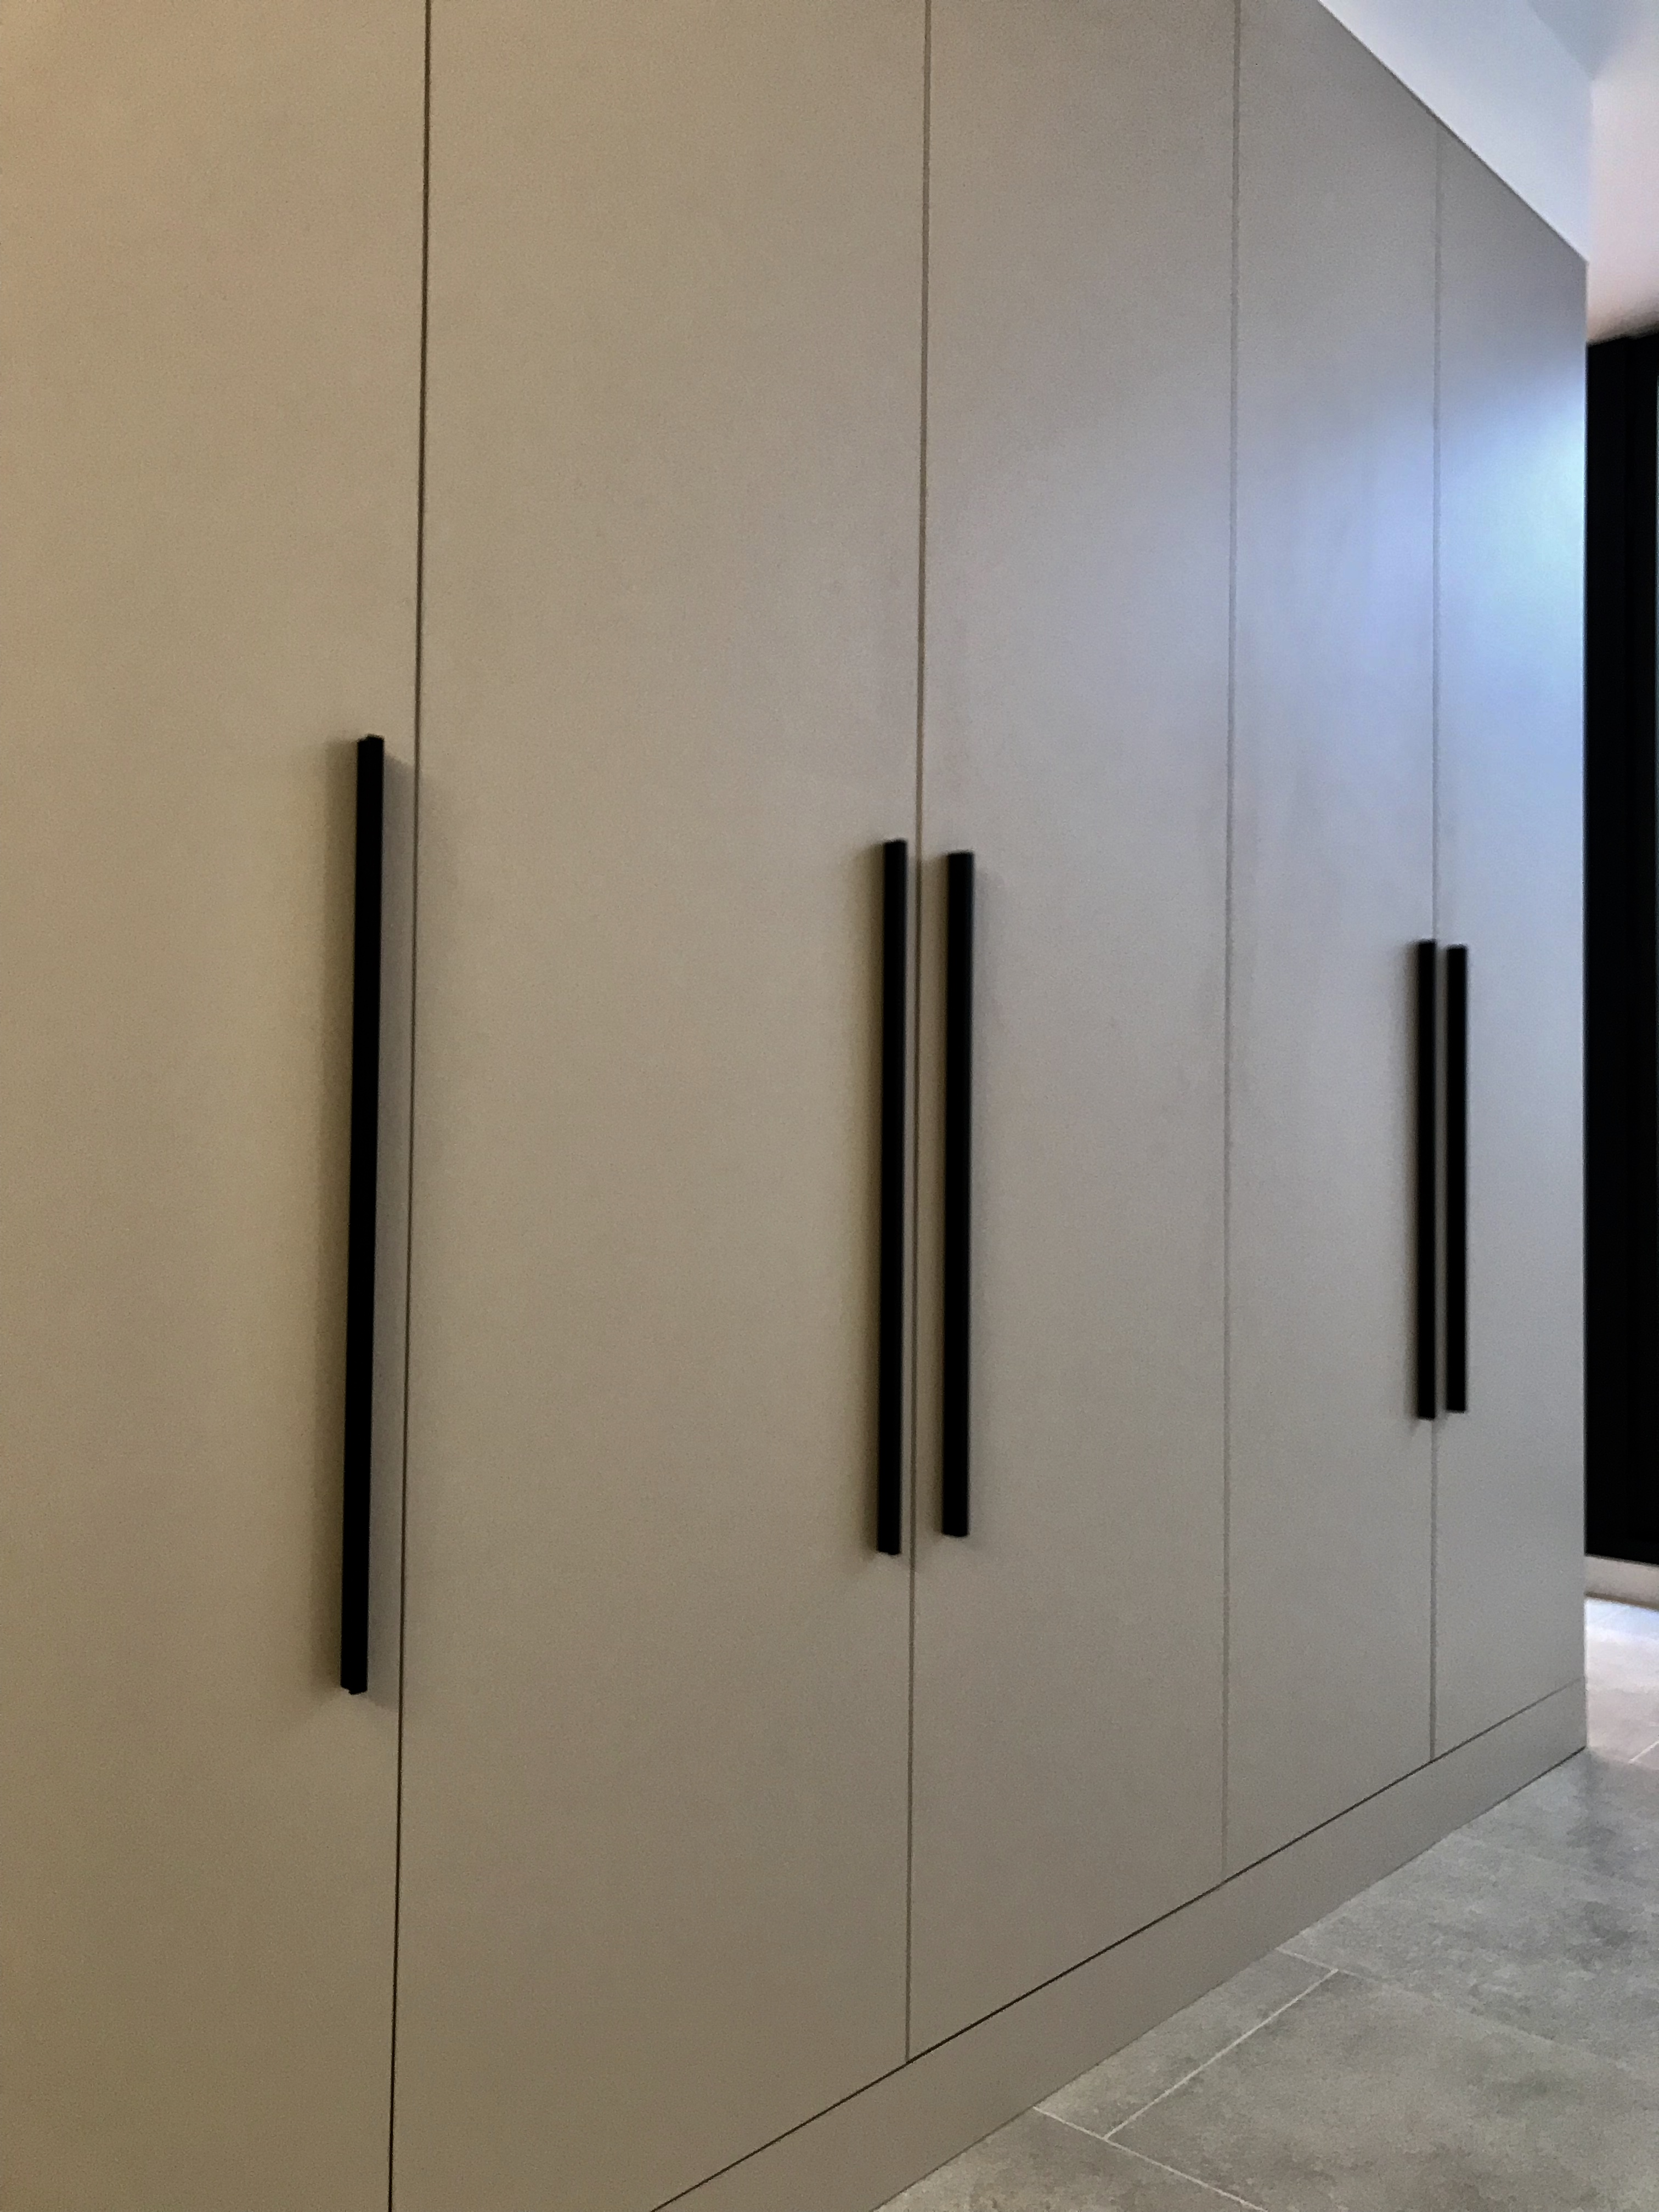 rardo-architects-in-sitges-and-barcelona-vi